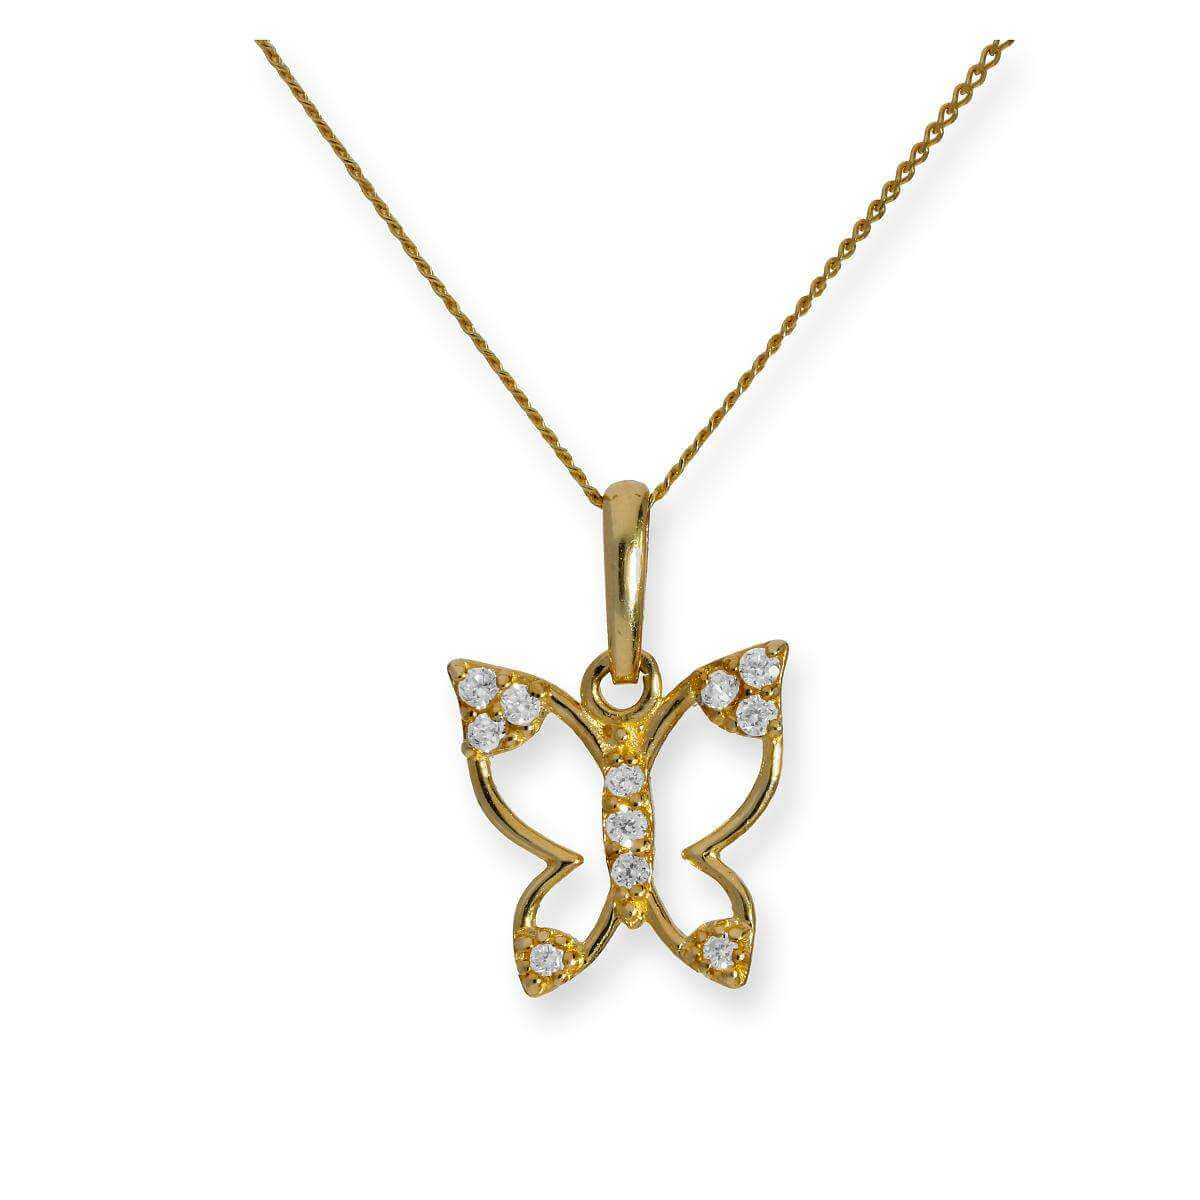 9ct Gold & Clear CZ Crystal Cut Out Butterfly Pendant Necklace 16 - 20 Inches